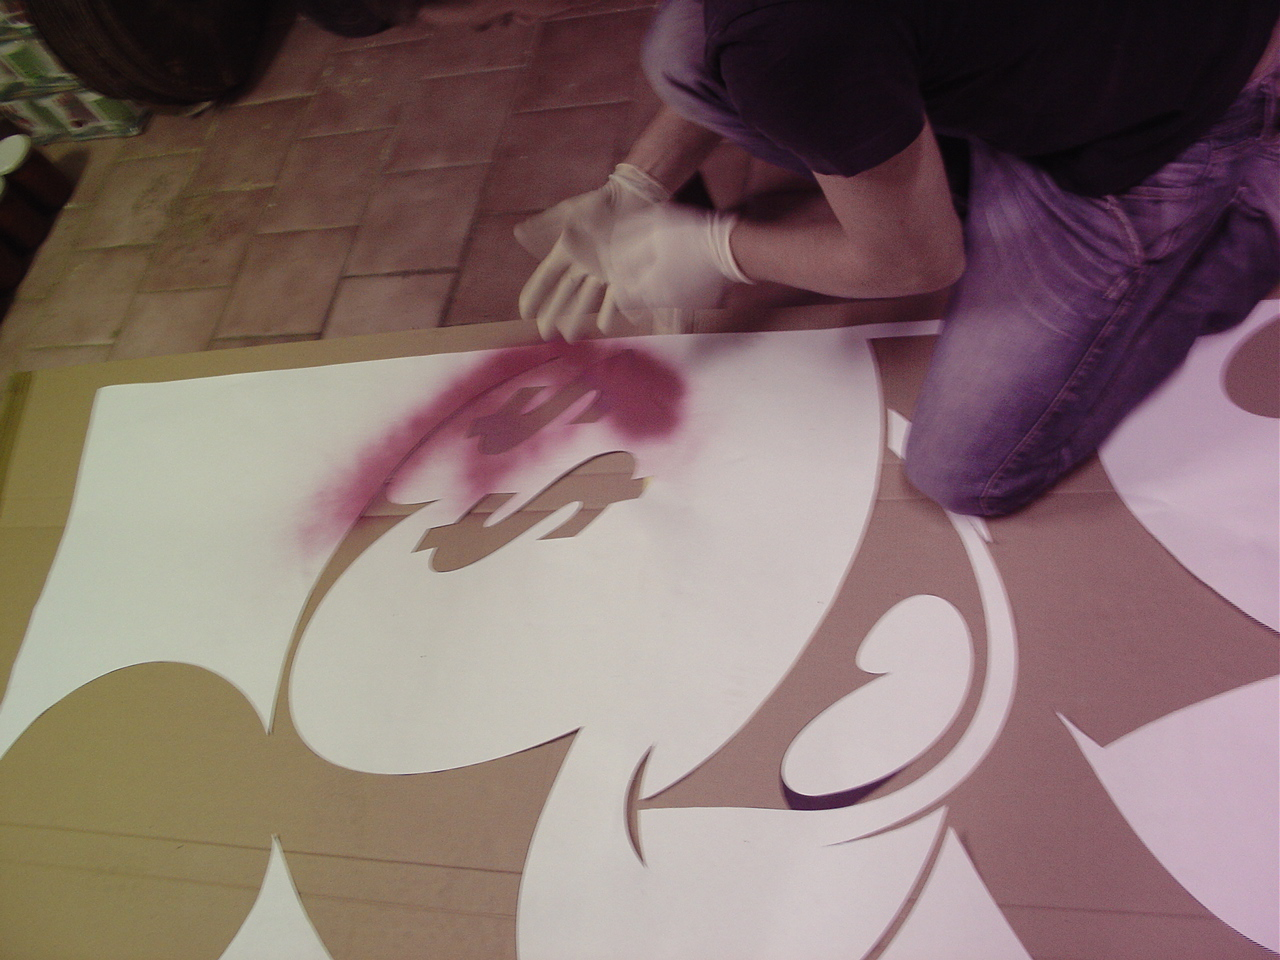 TOPOLINO MONEY MOUSE MEGA STENCIL (LORD SATO AT WORK)